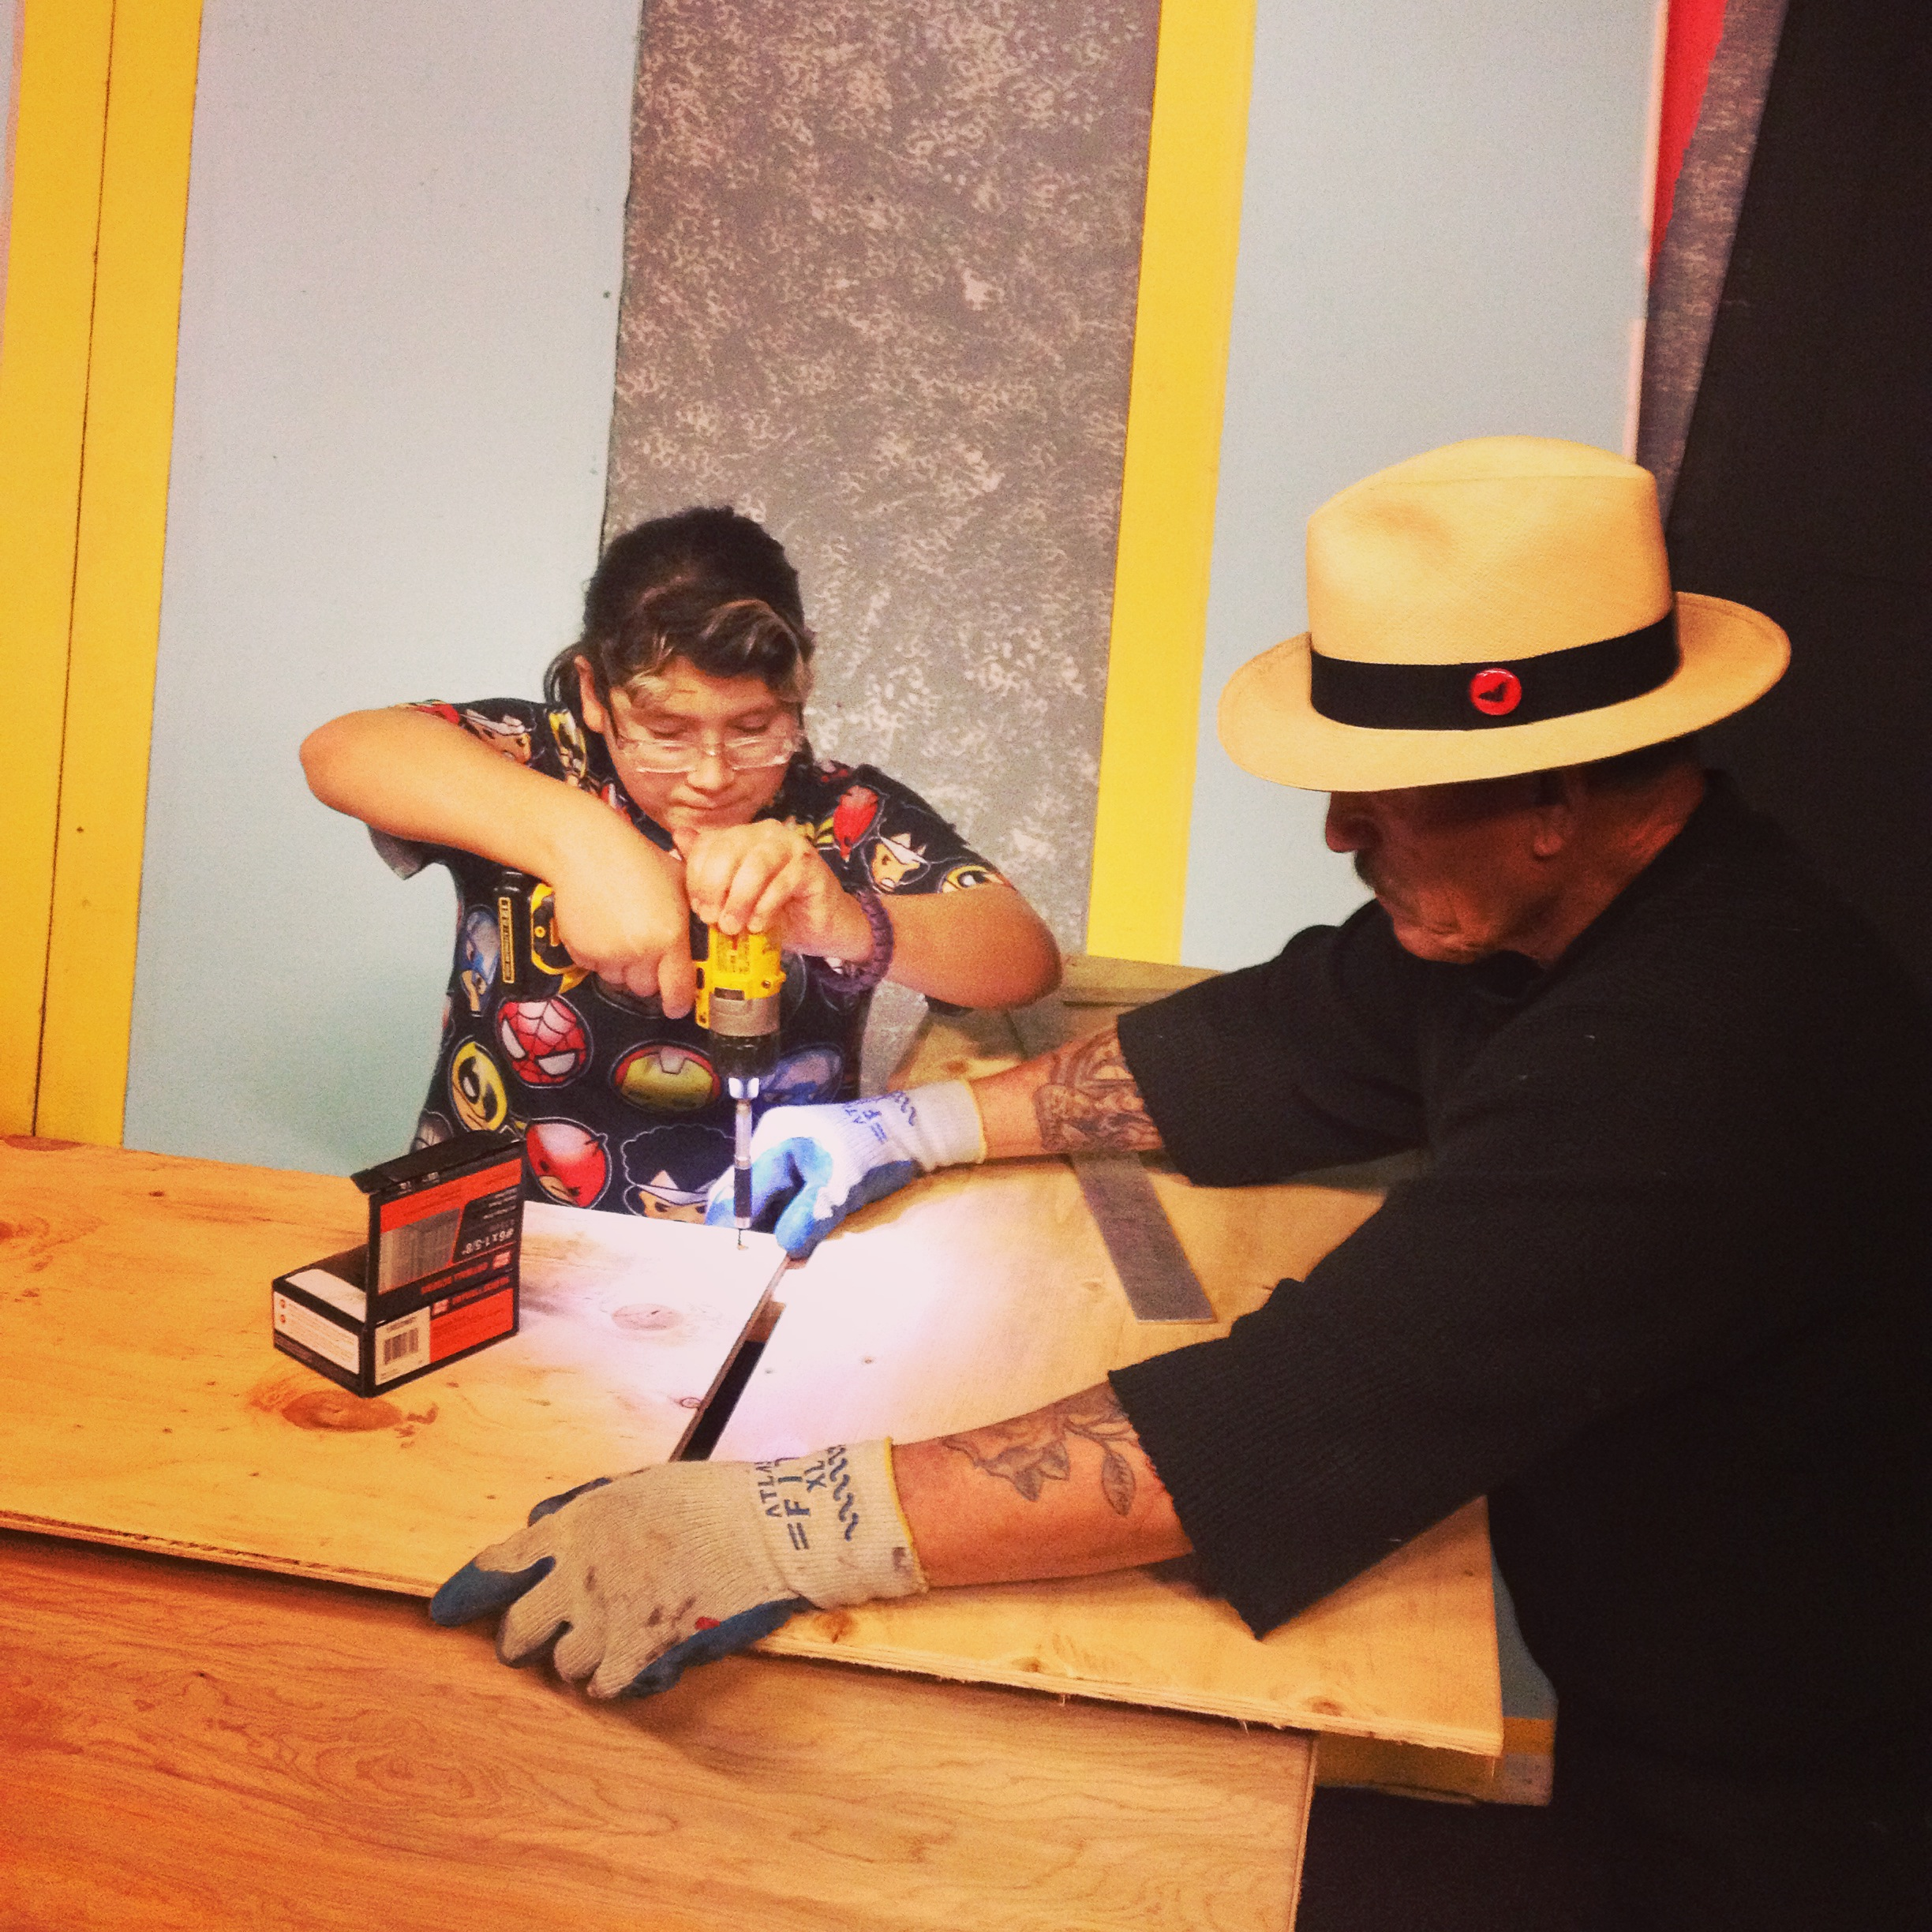 behind the scenes! - Youth Company member, Destiny Silva, helps build the set